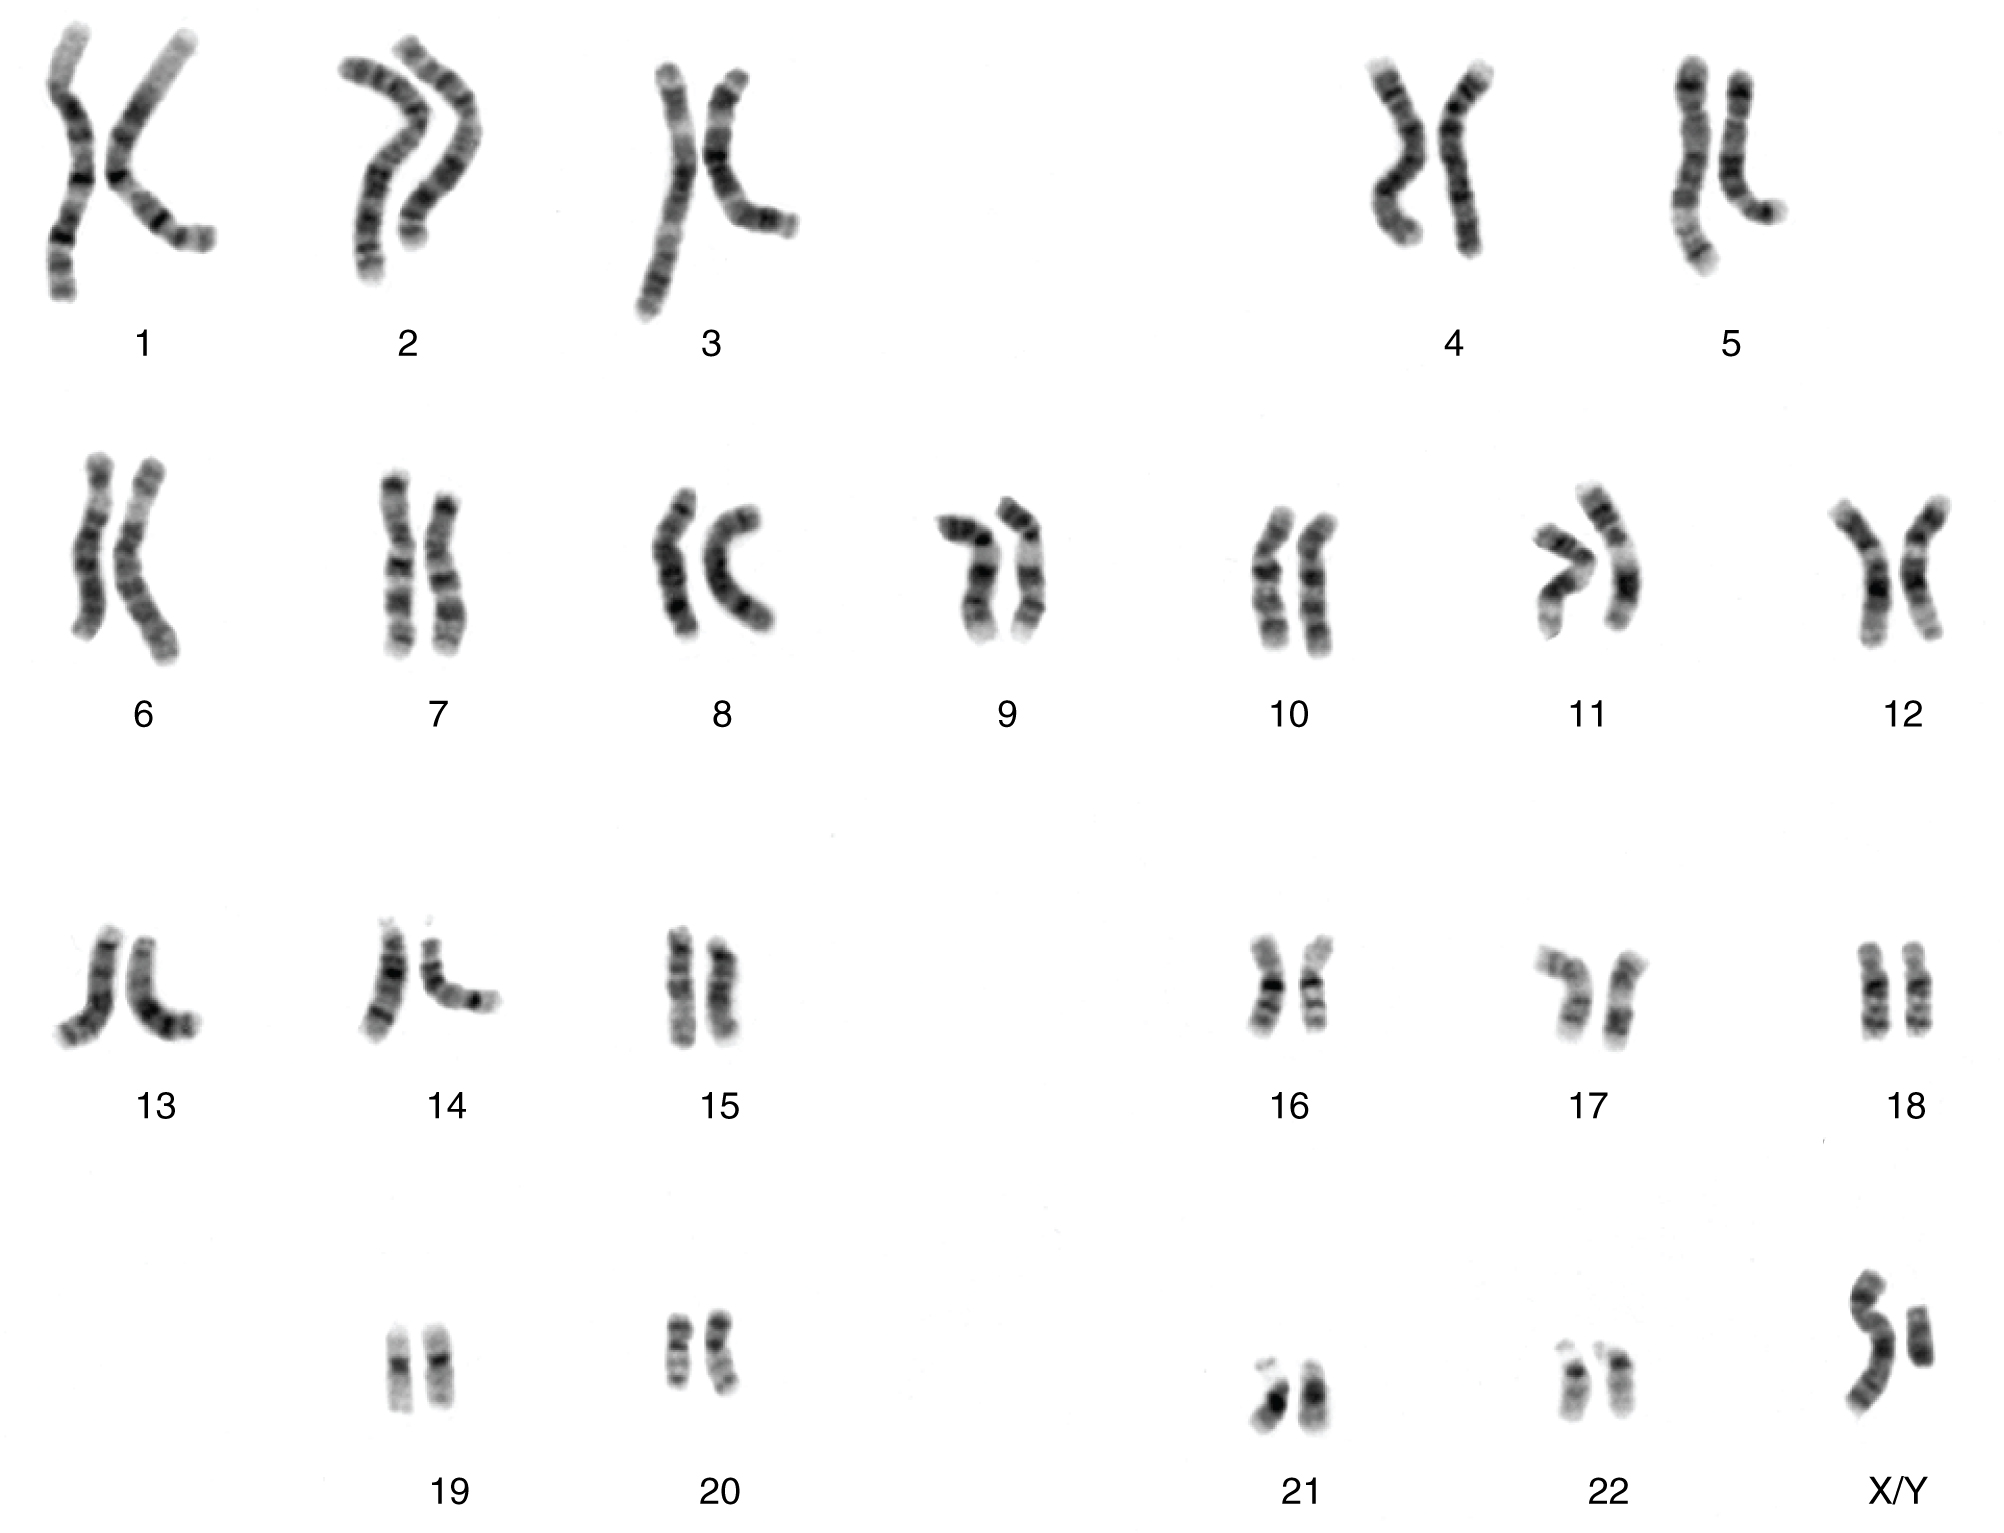 This figure show the 23 pairs of chromosomes in a male human being.